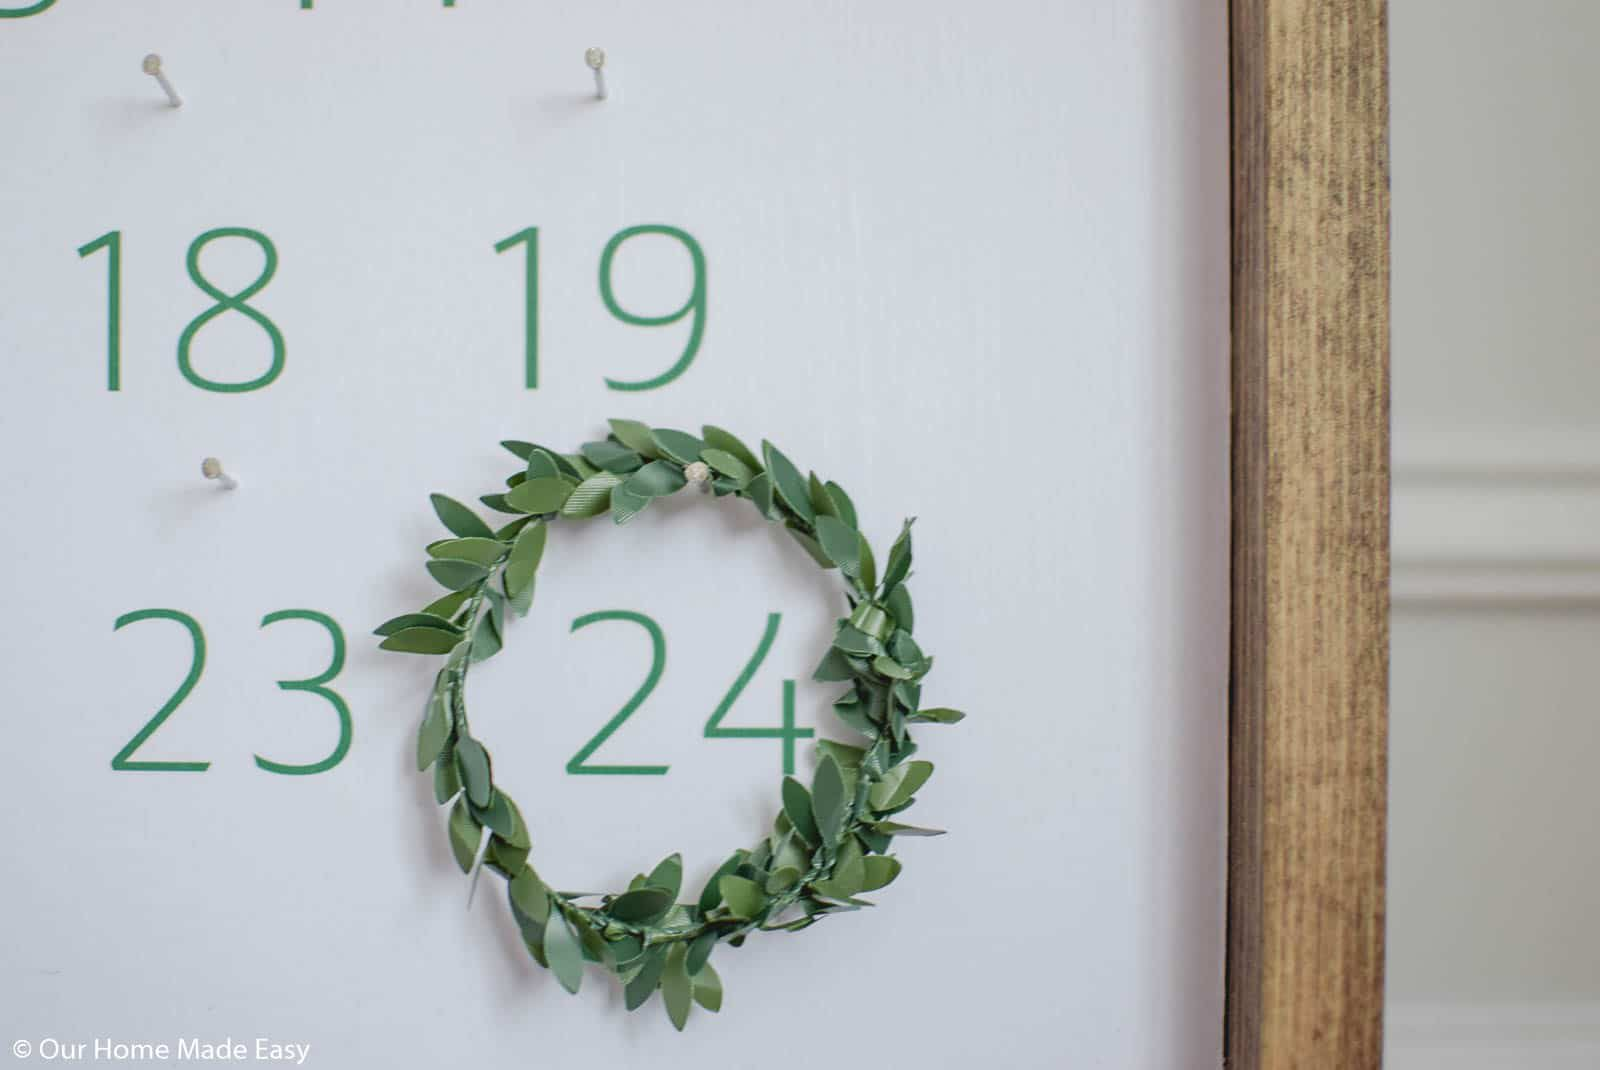 A wall art advent calendar in a wood frame with large green numbers.